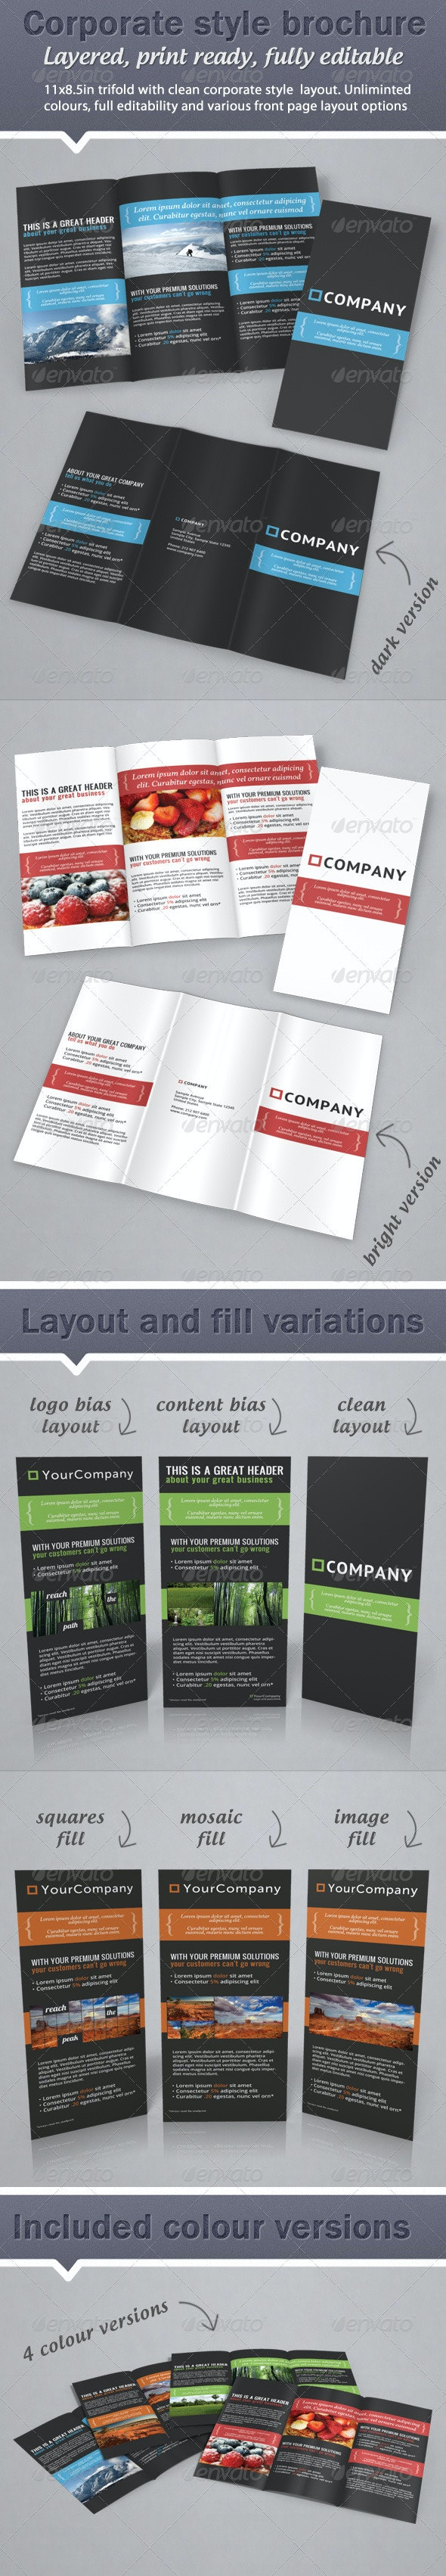 Corporate Business Style Trifold Brochure  - Corporate Brochures